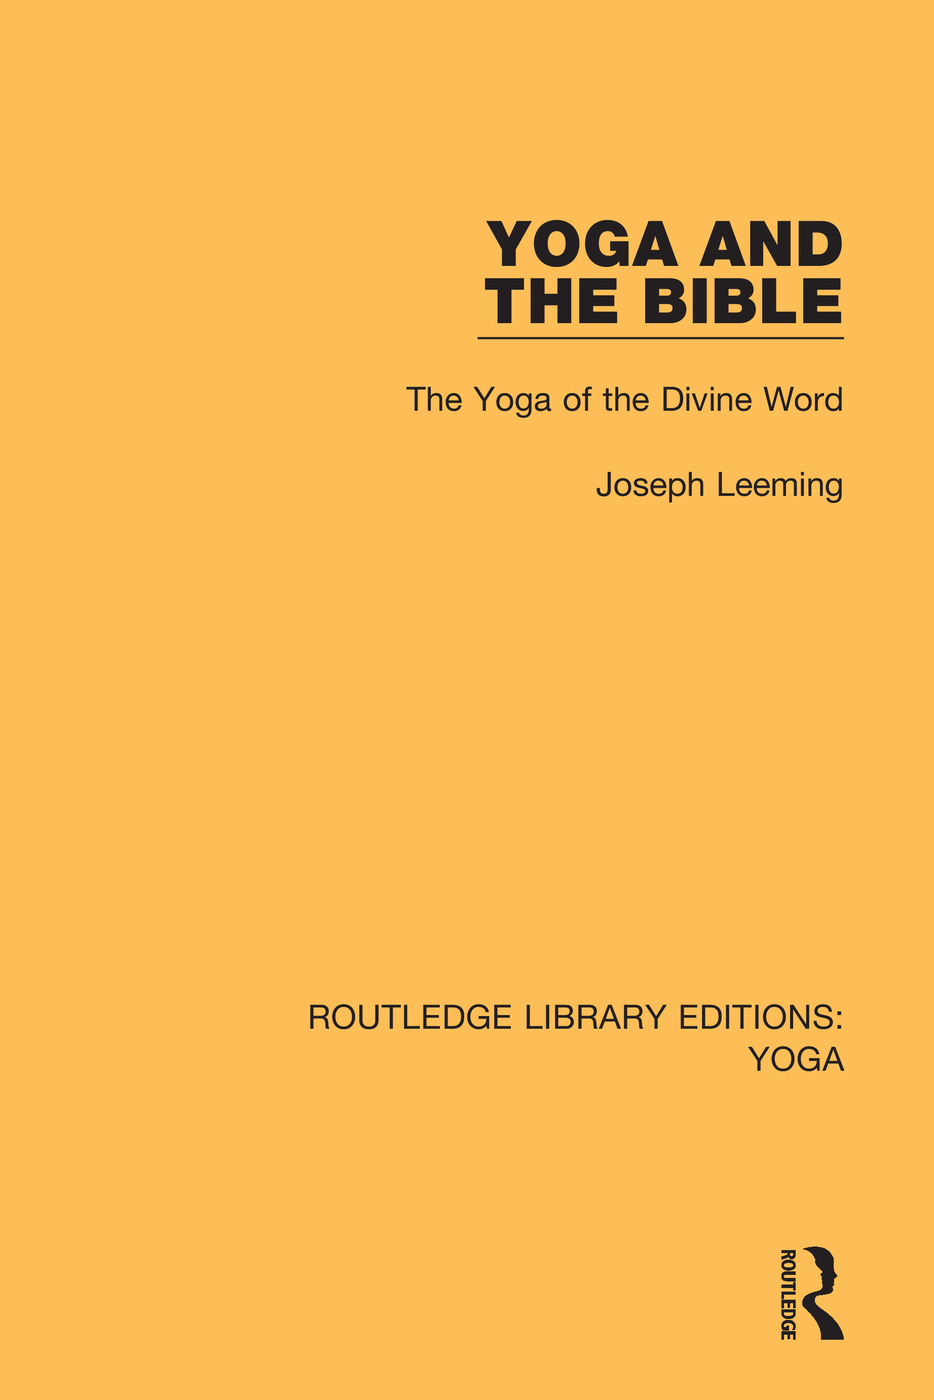 Yoga and the Bible